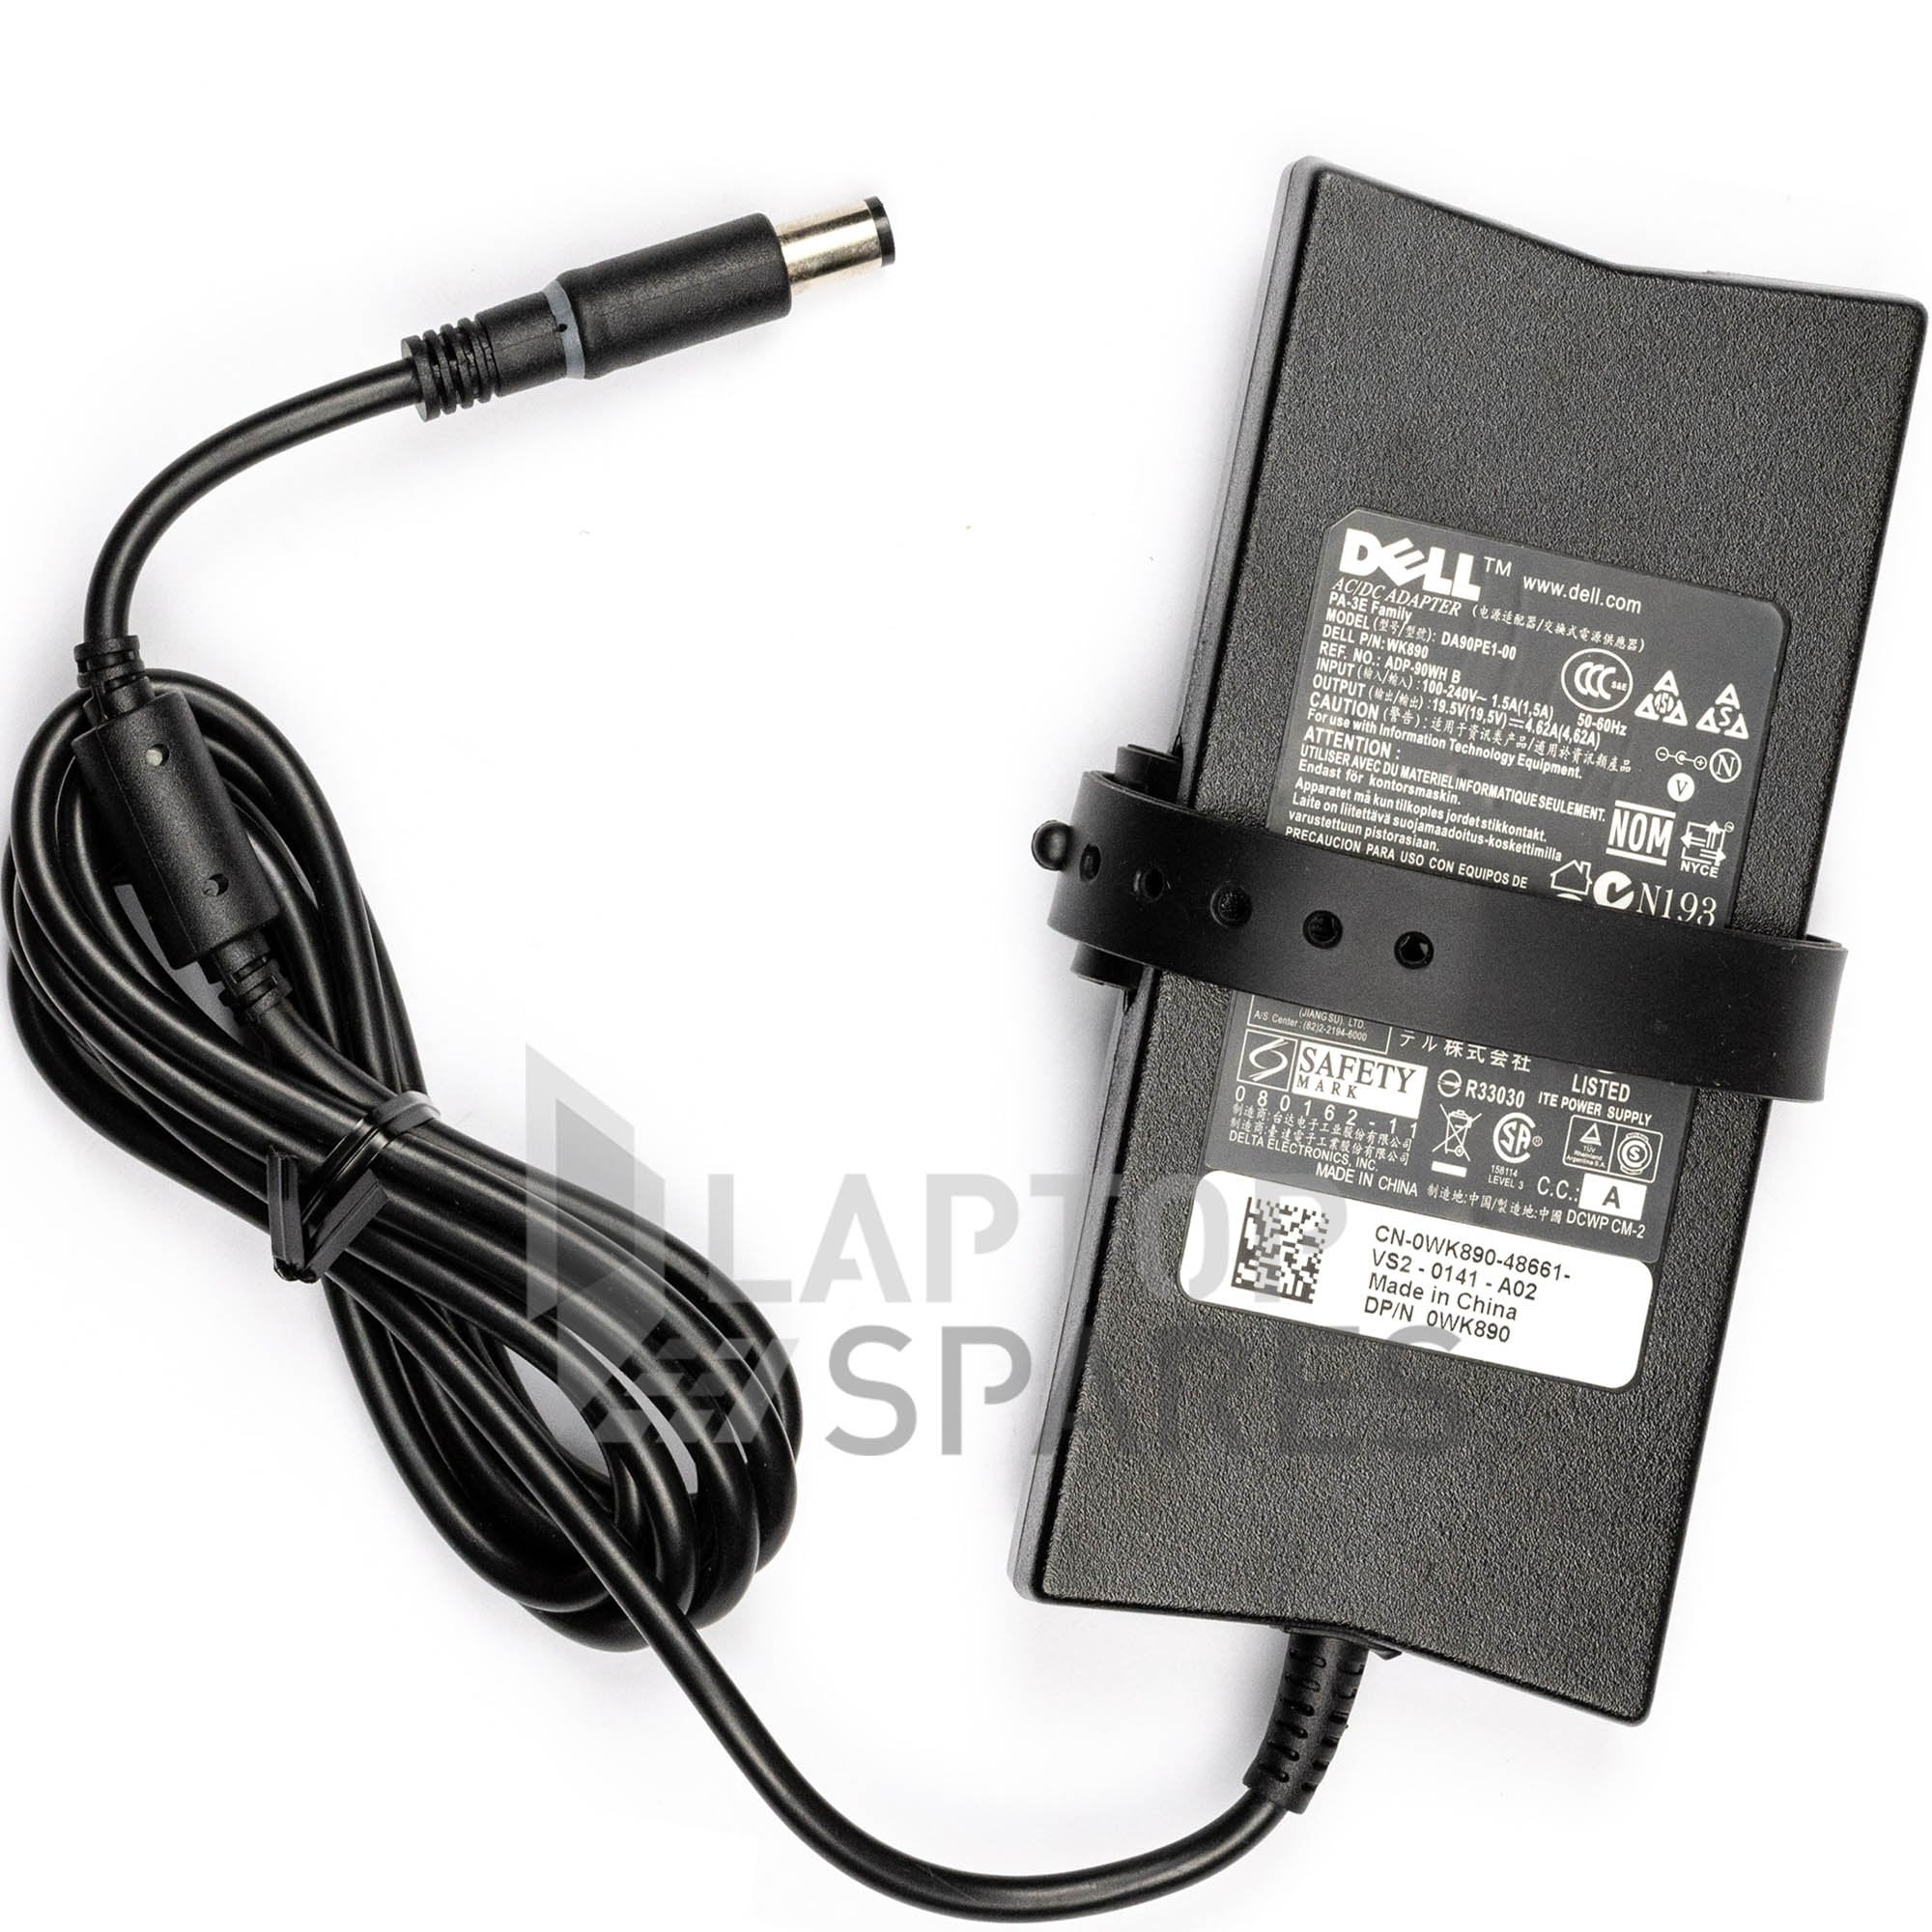 Dell Inspiron 15R M5010 N5010 Laptop Slim AC Adapter Charger